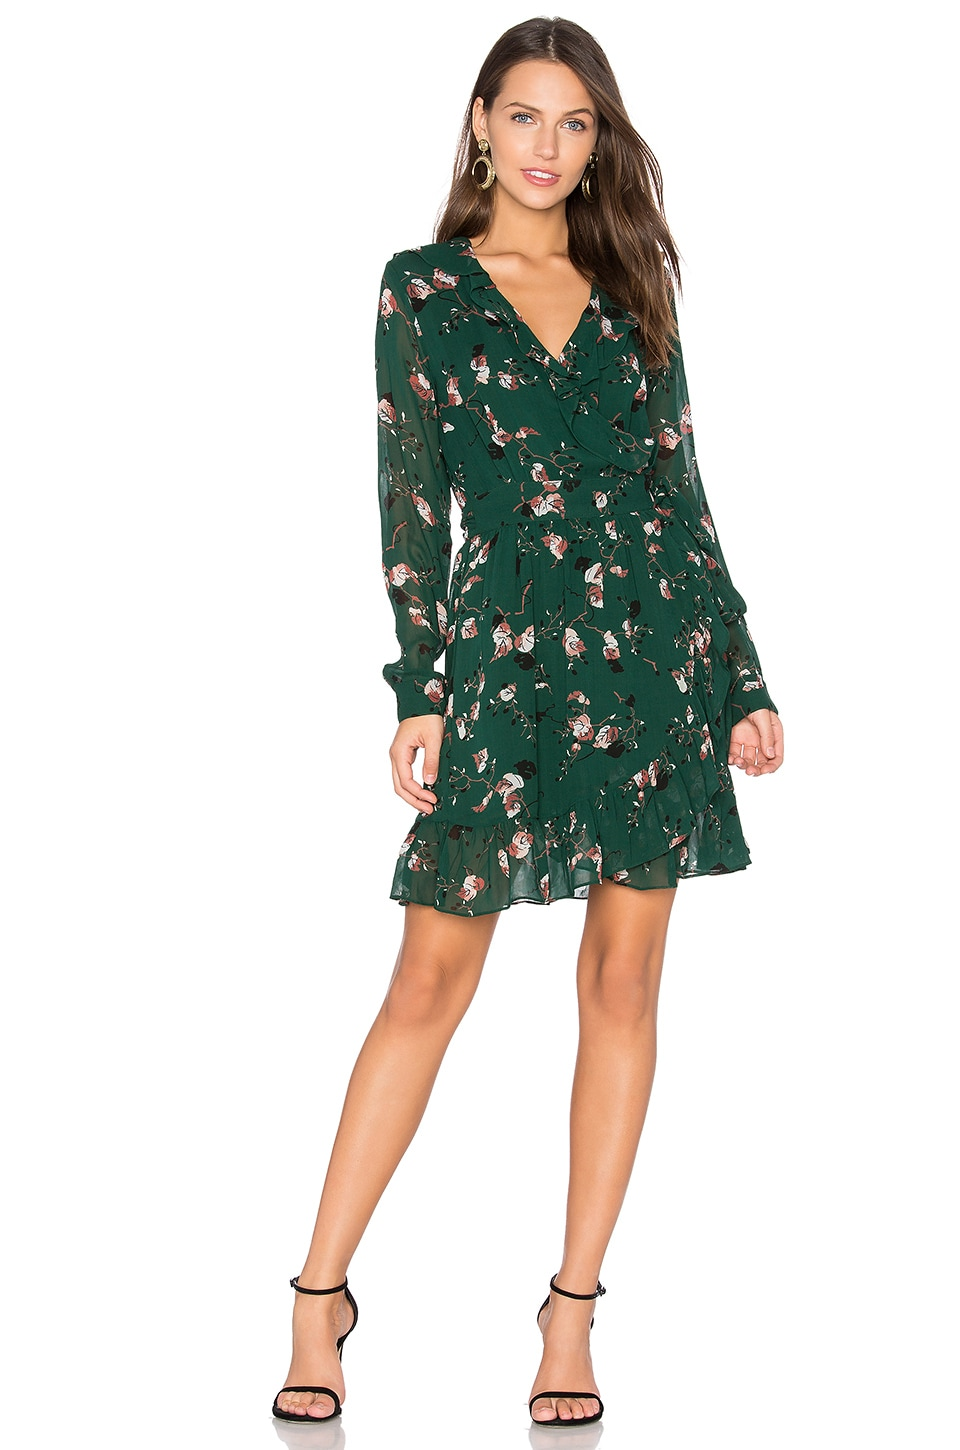 Ganni Marietta Georgette Dress in Pine Grove Leaves